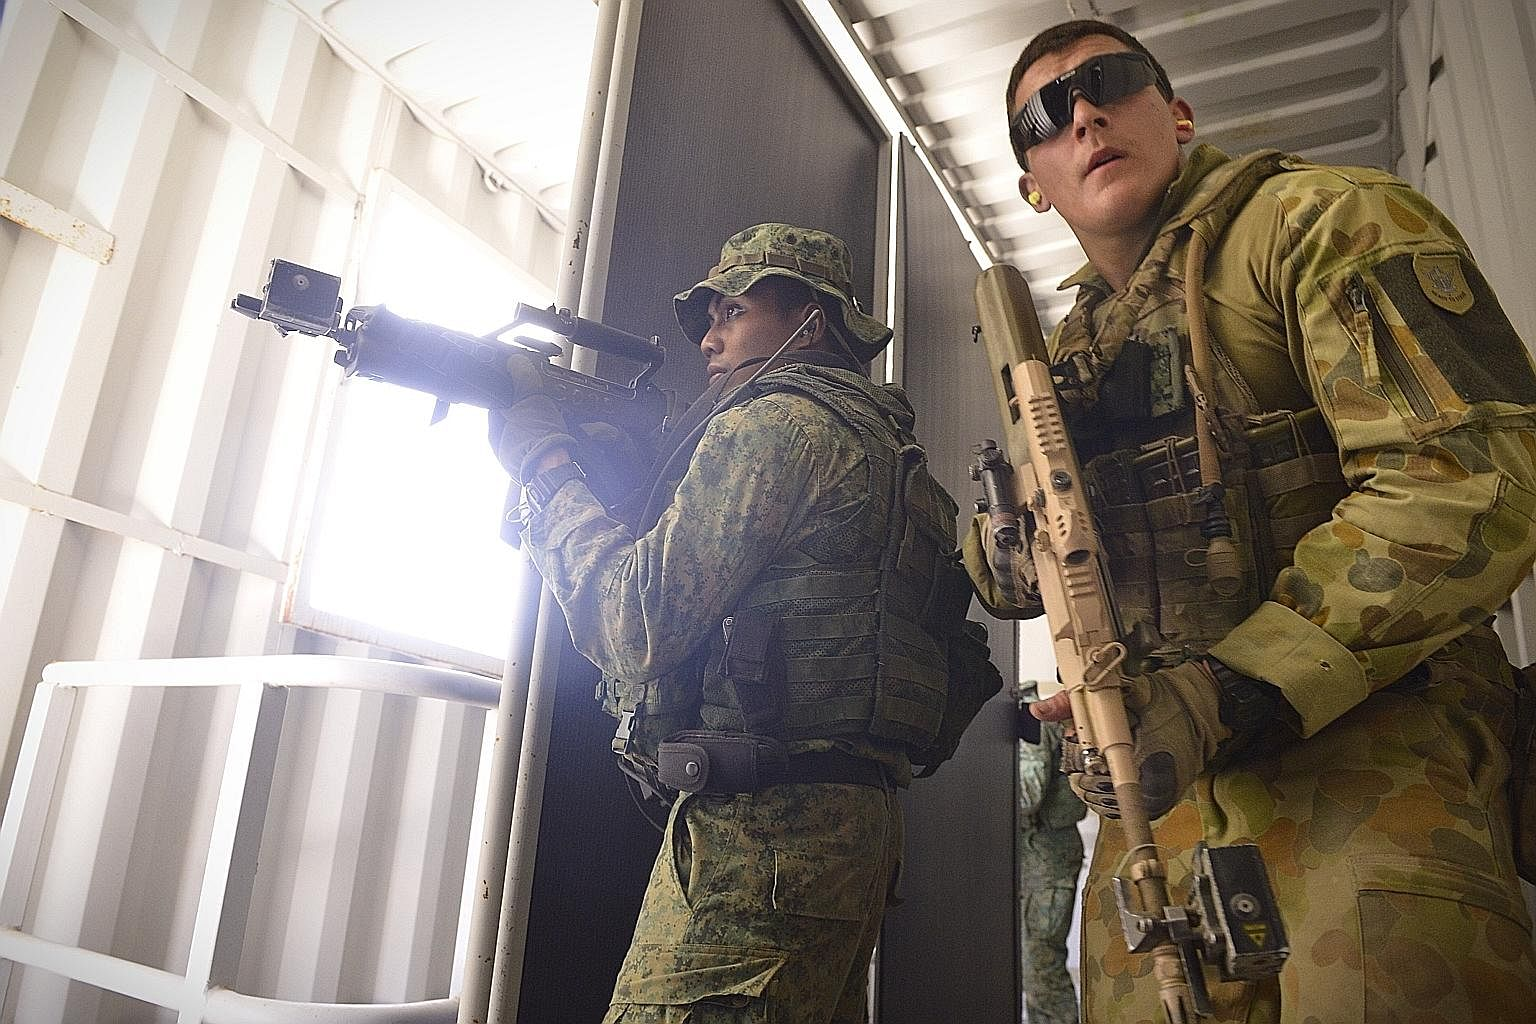 A joint Singapore and Australia armed forces exercise in Australia in 2014. The two armed forces have exercised together for decades, breeding familiarity and transparency across doctrines and operational concepts. Under the Comprehensive Strategic P